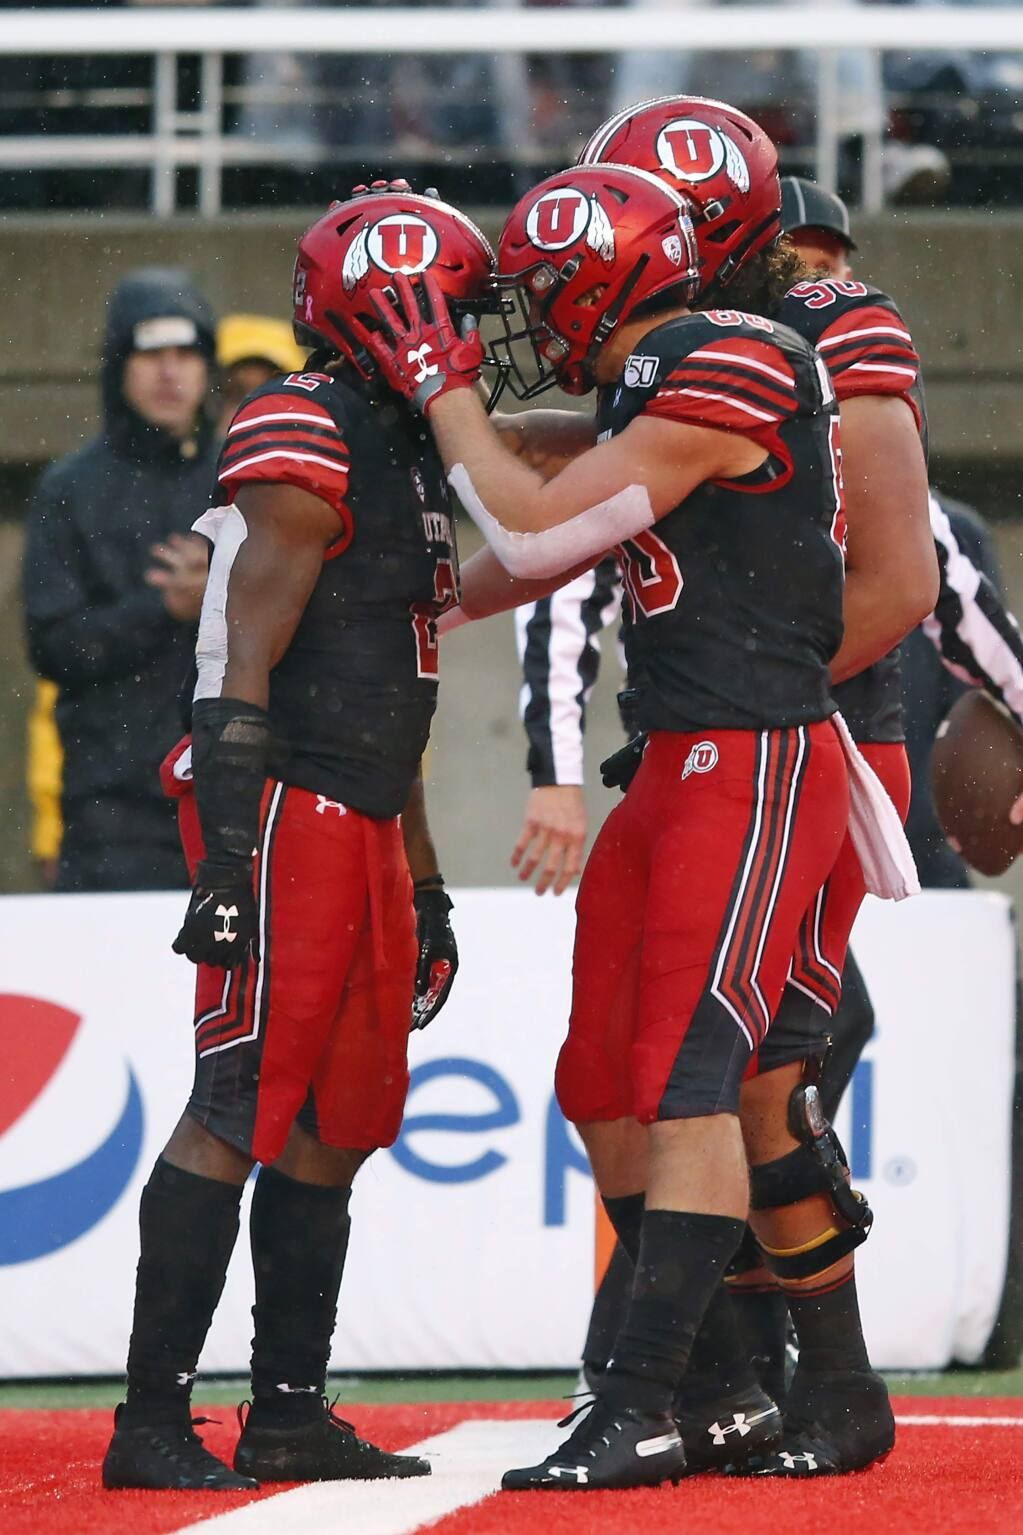 Utah running back Zack Moss, left, celebrates with teammates after his 1-yard touchdown run during the first half against Arizona State on Saturday, Oct. 19, 2019, in Salt Lake City. (AP Photo/Rick Bowmer)